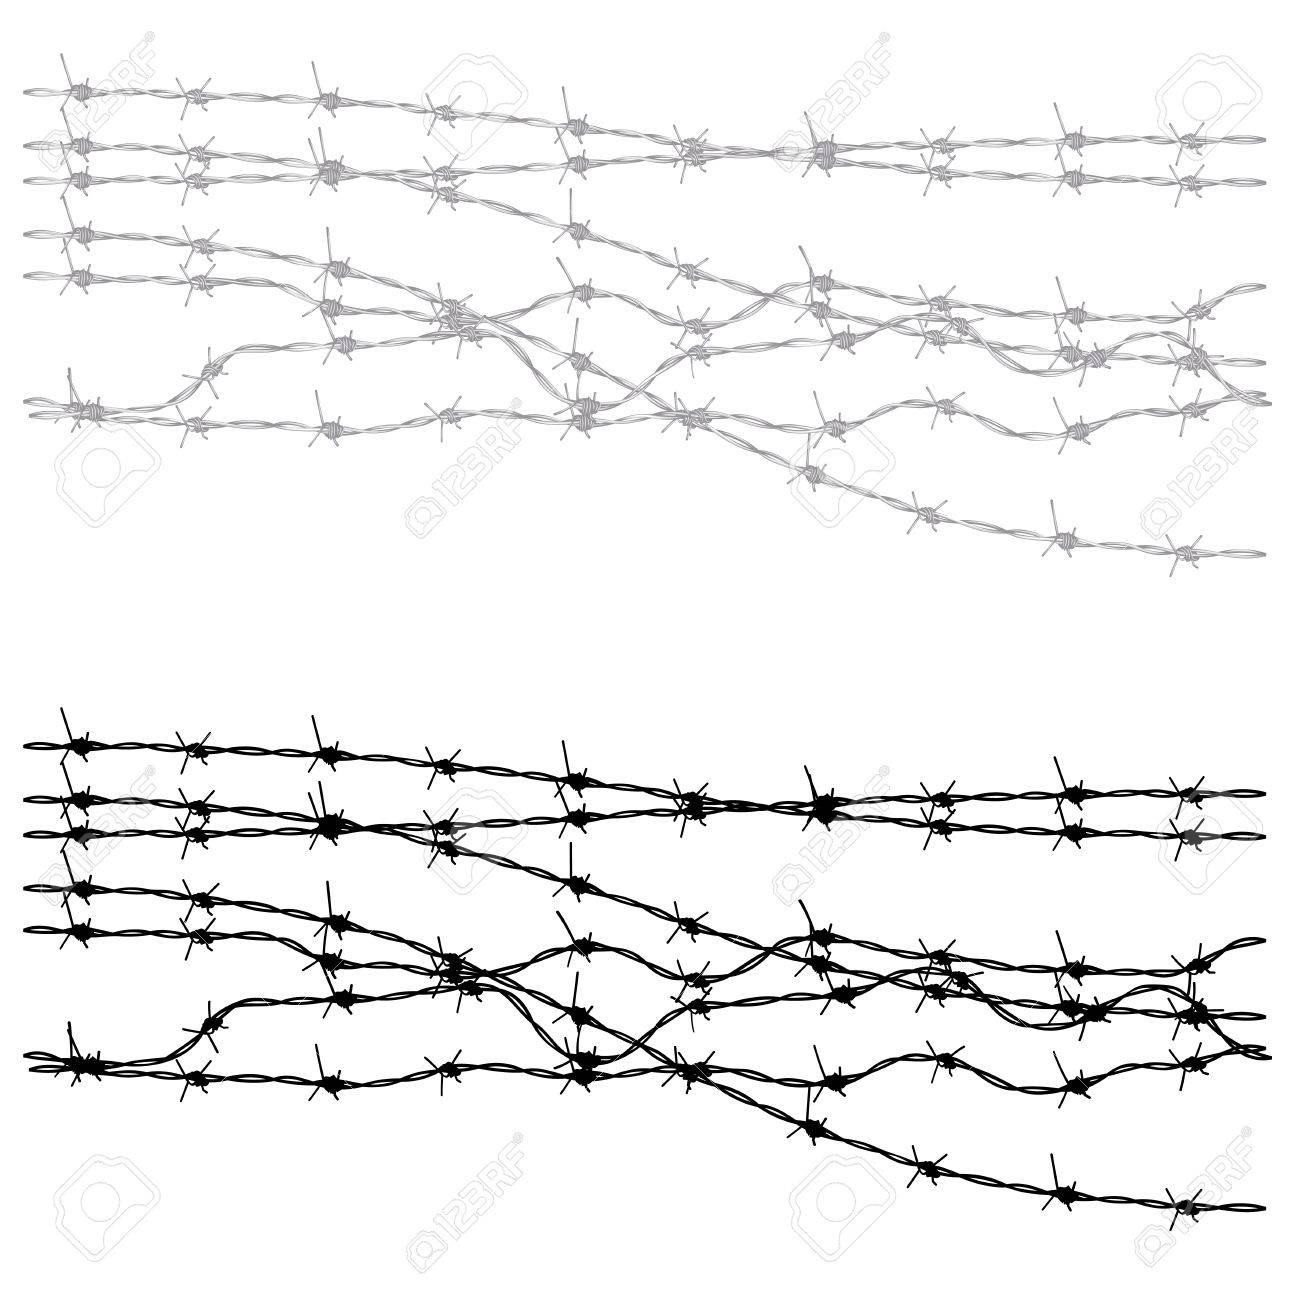 Metal barbed wire illustration on white background royalty free